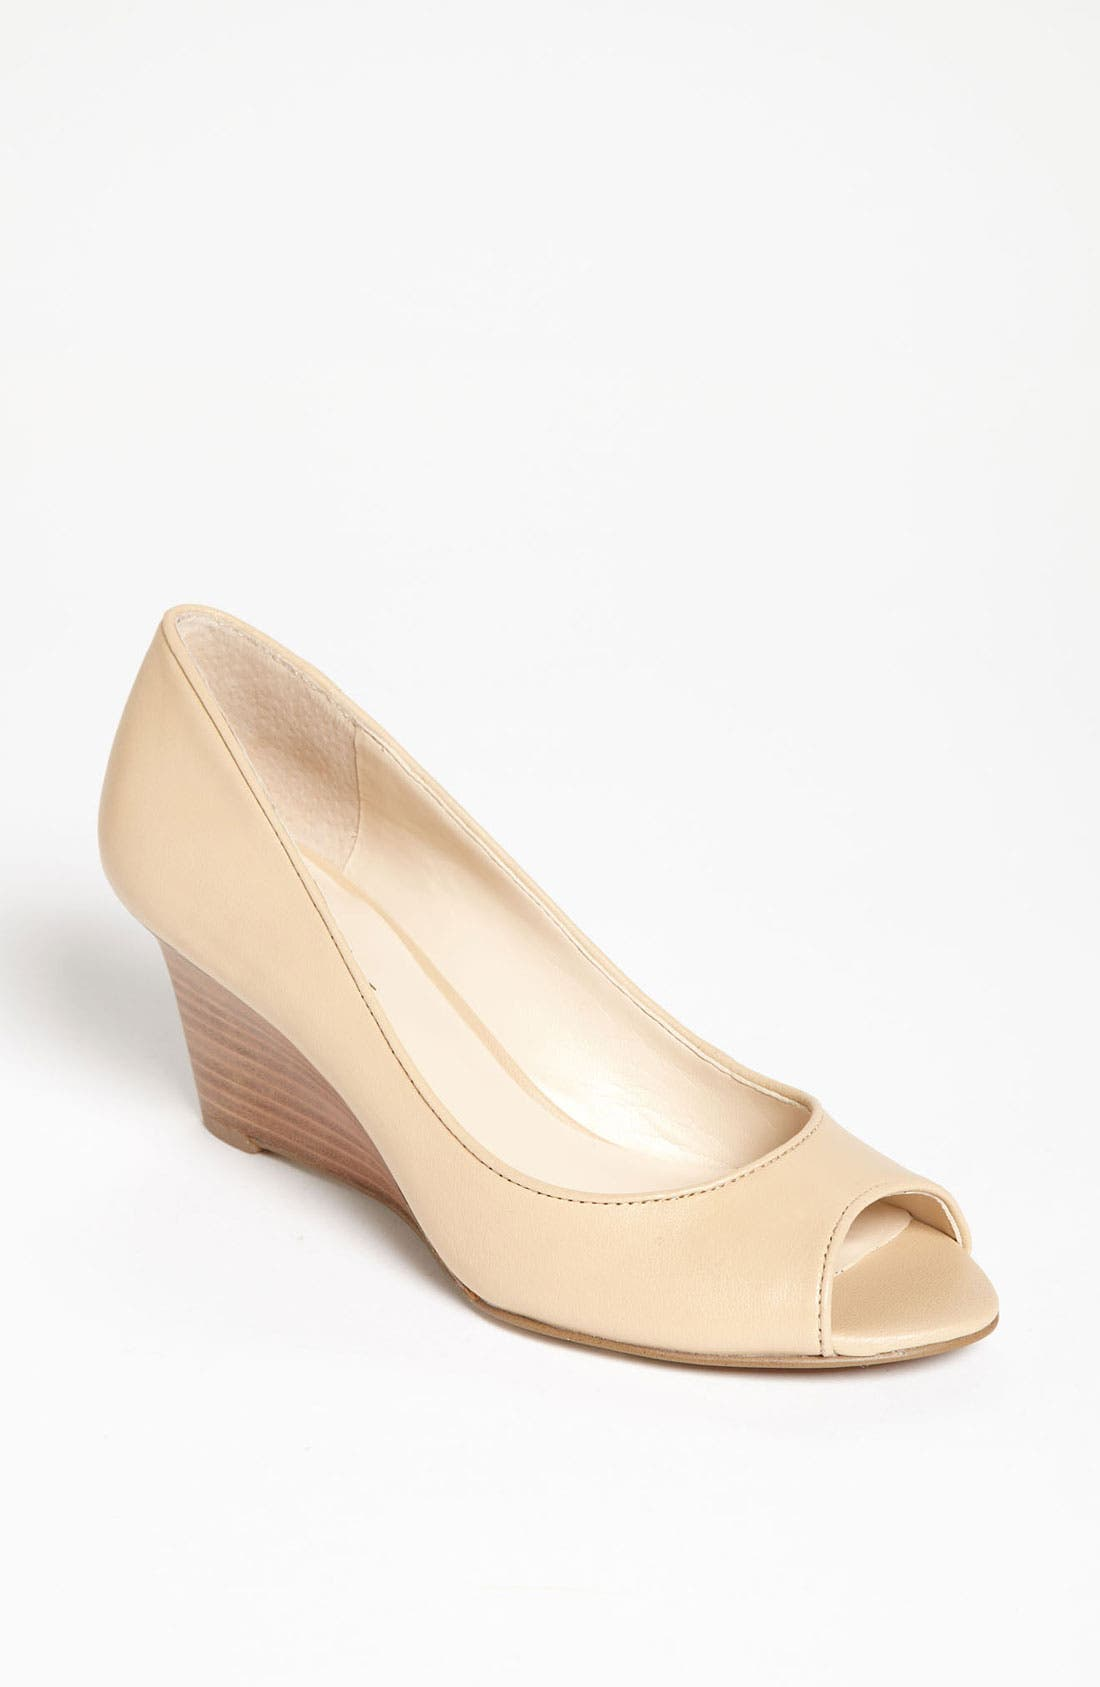 Alternate Image 1 Selected - Nine West 'Relaxxin' Pump